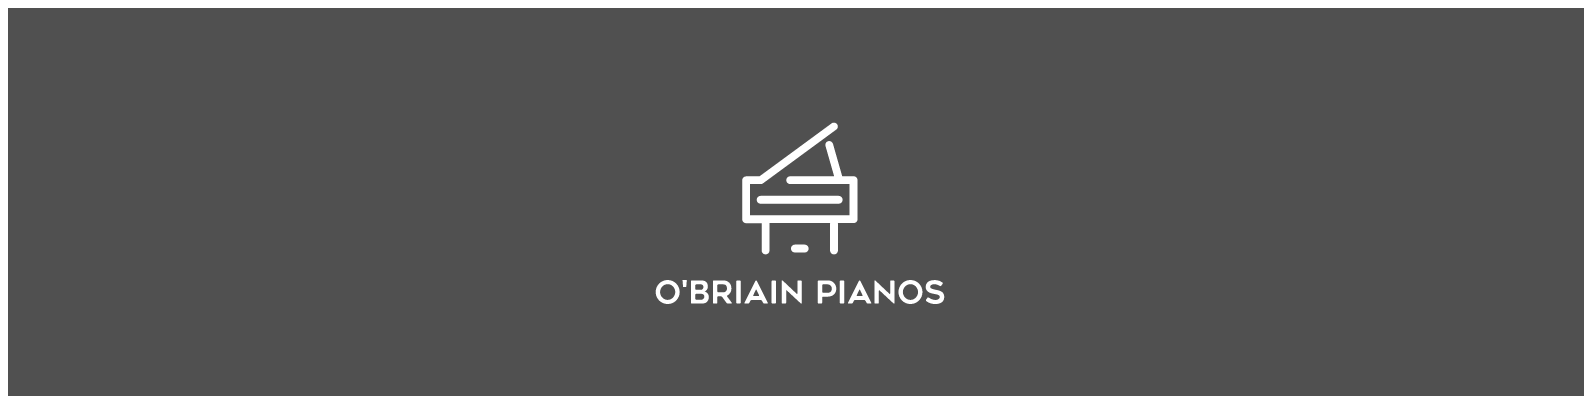 O'Briain Pianos |  Pianos for Sale | Lucan, Dublin, Ireland-O'Briain Pianos